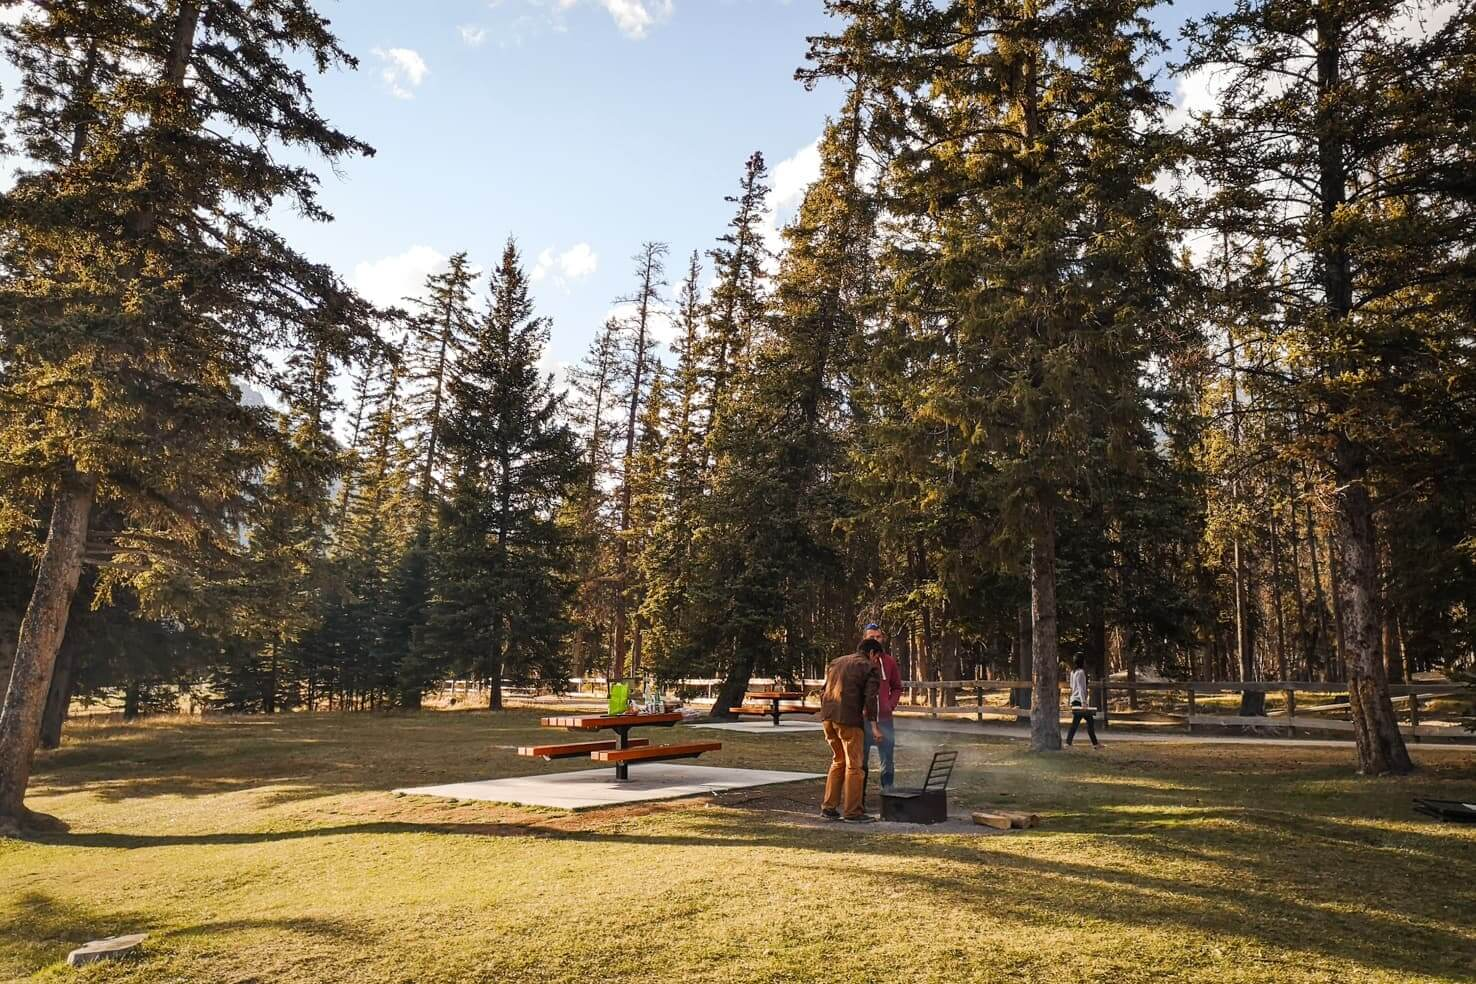 100 things to do in Banff National Park, Canada - Enjoy outdoor BBQ by Bow River